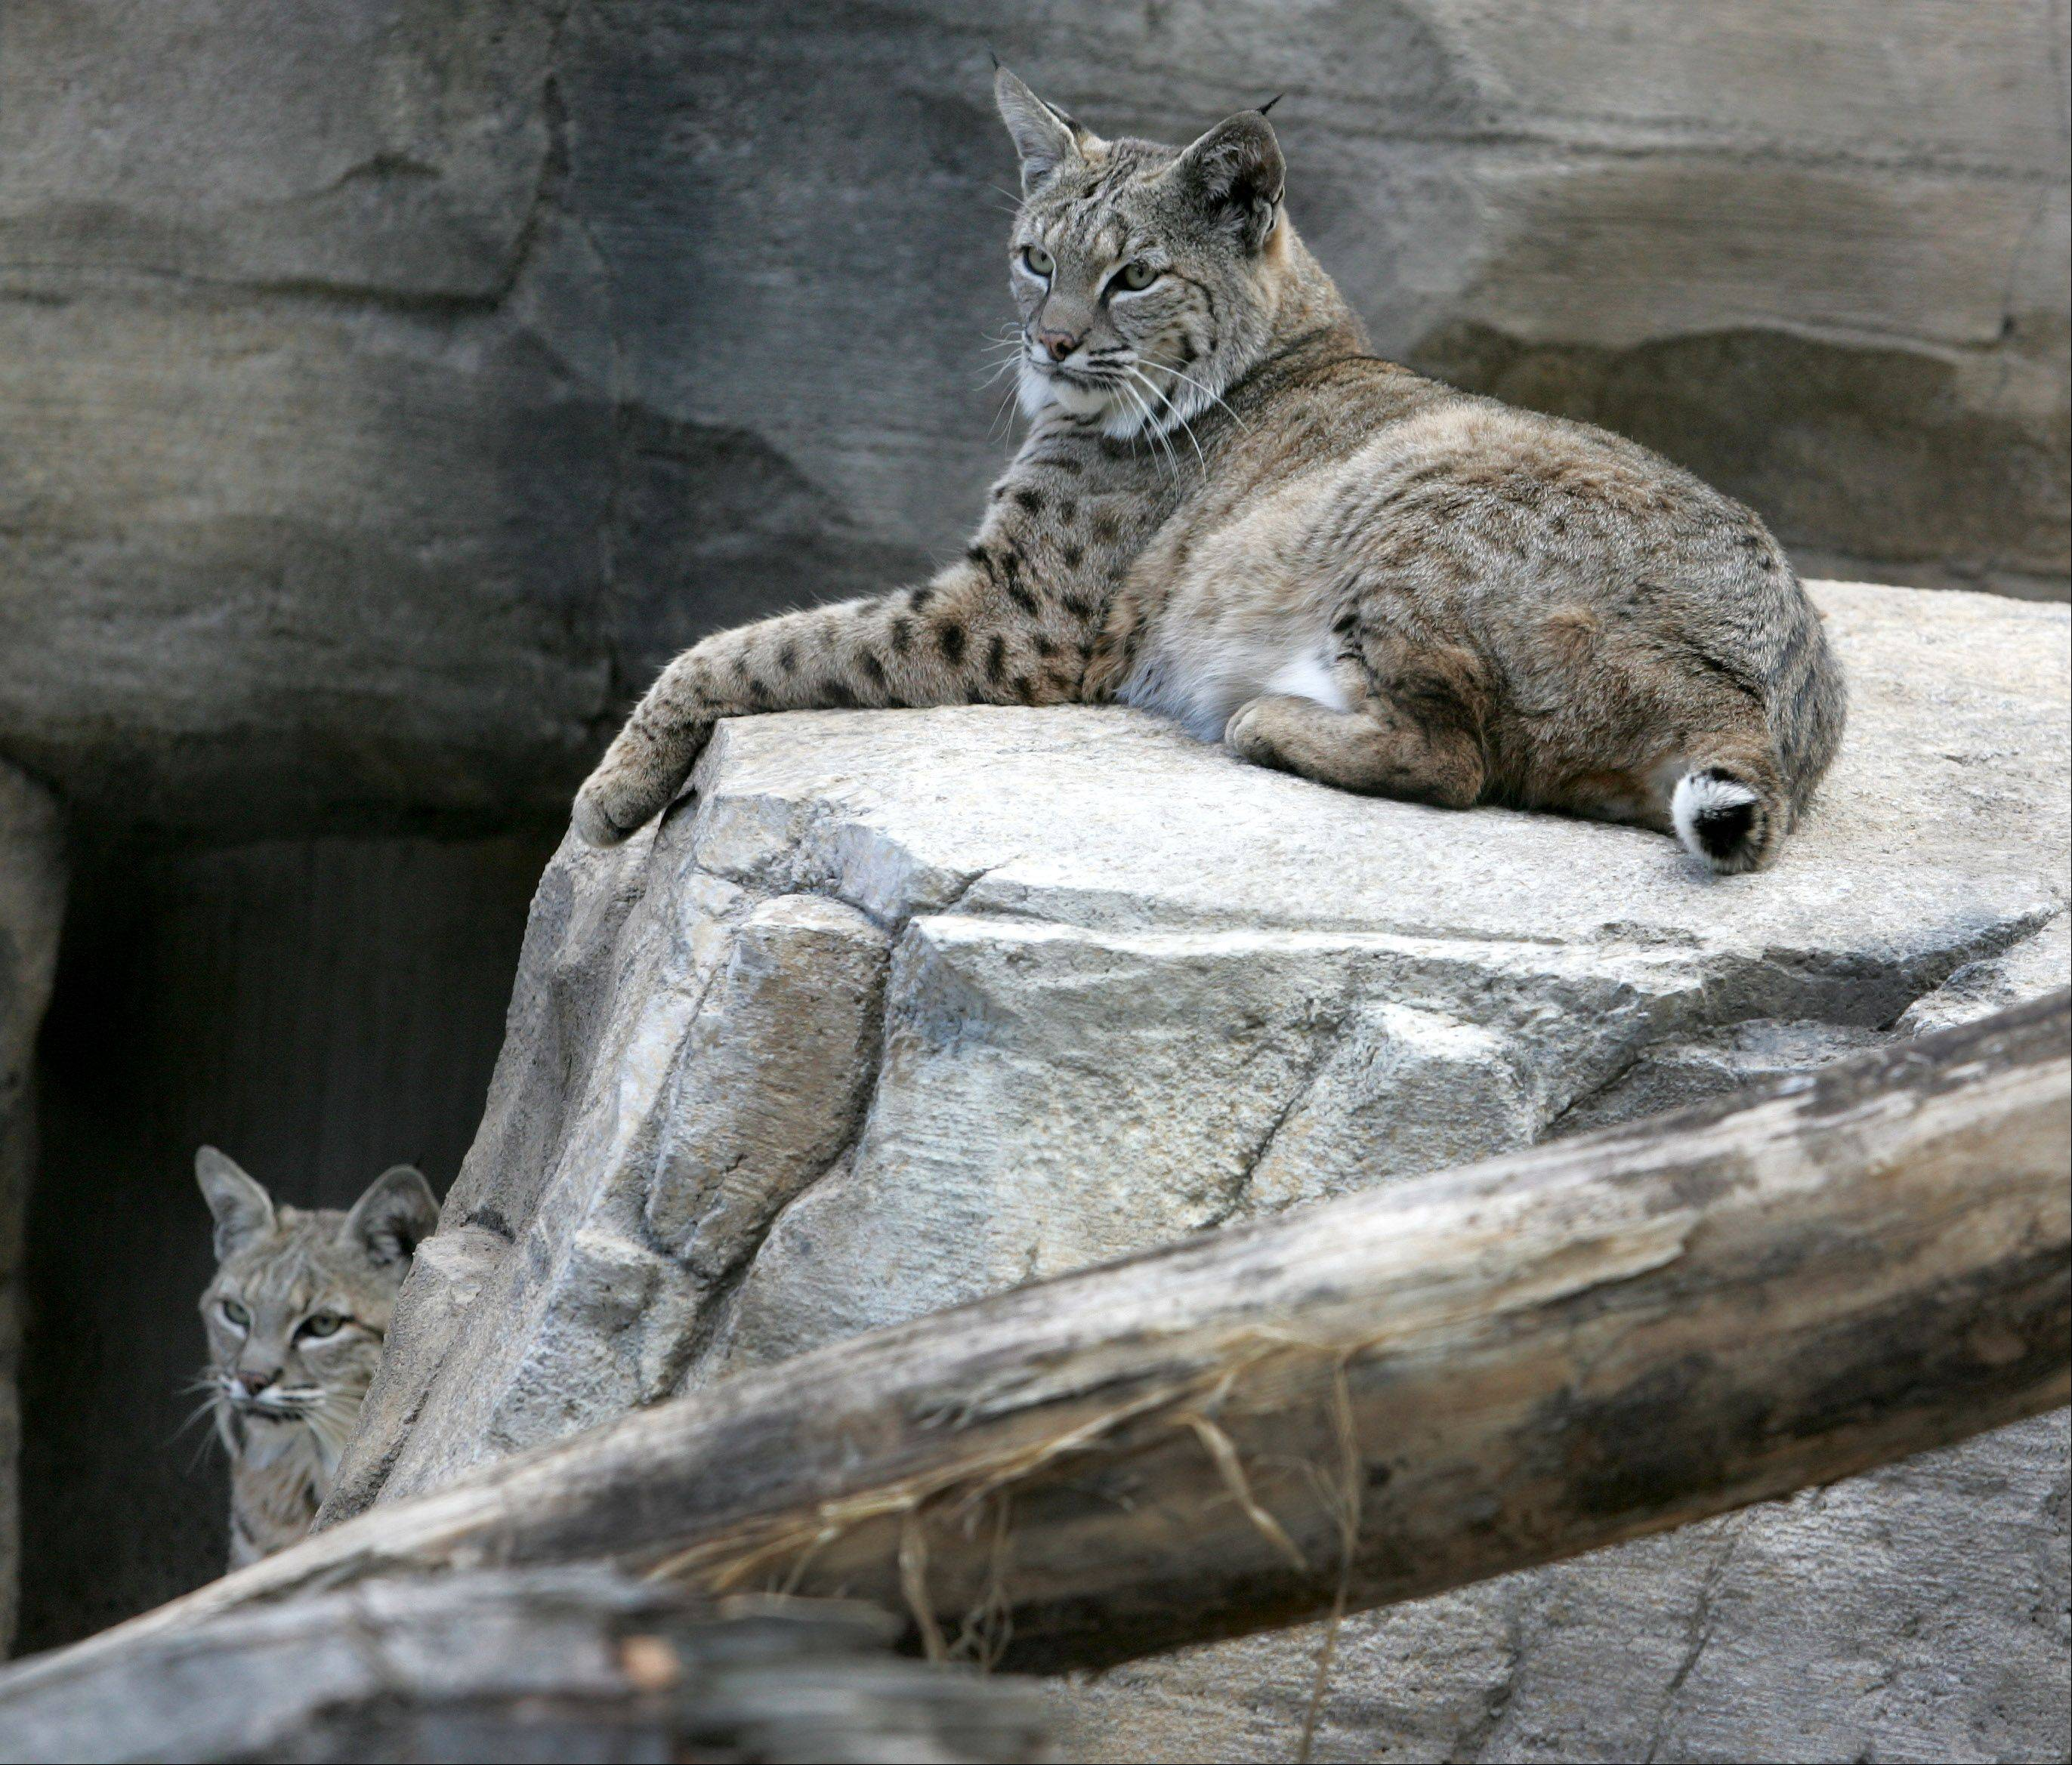 Wheaton Park District commissioners voted this week to raise fees for out-of-town visitors to Cosley Zoo, which recently opened its new bobcat exhibit.